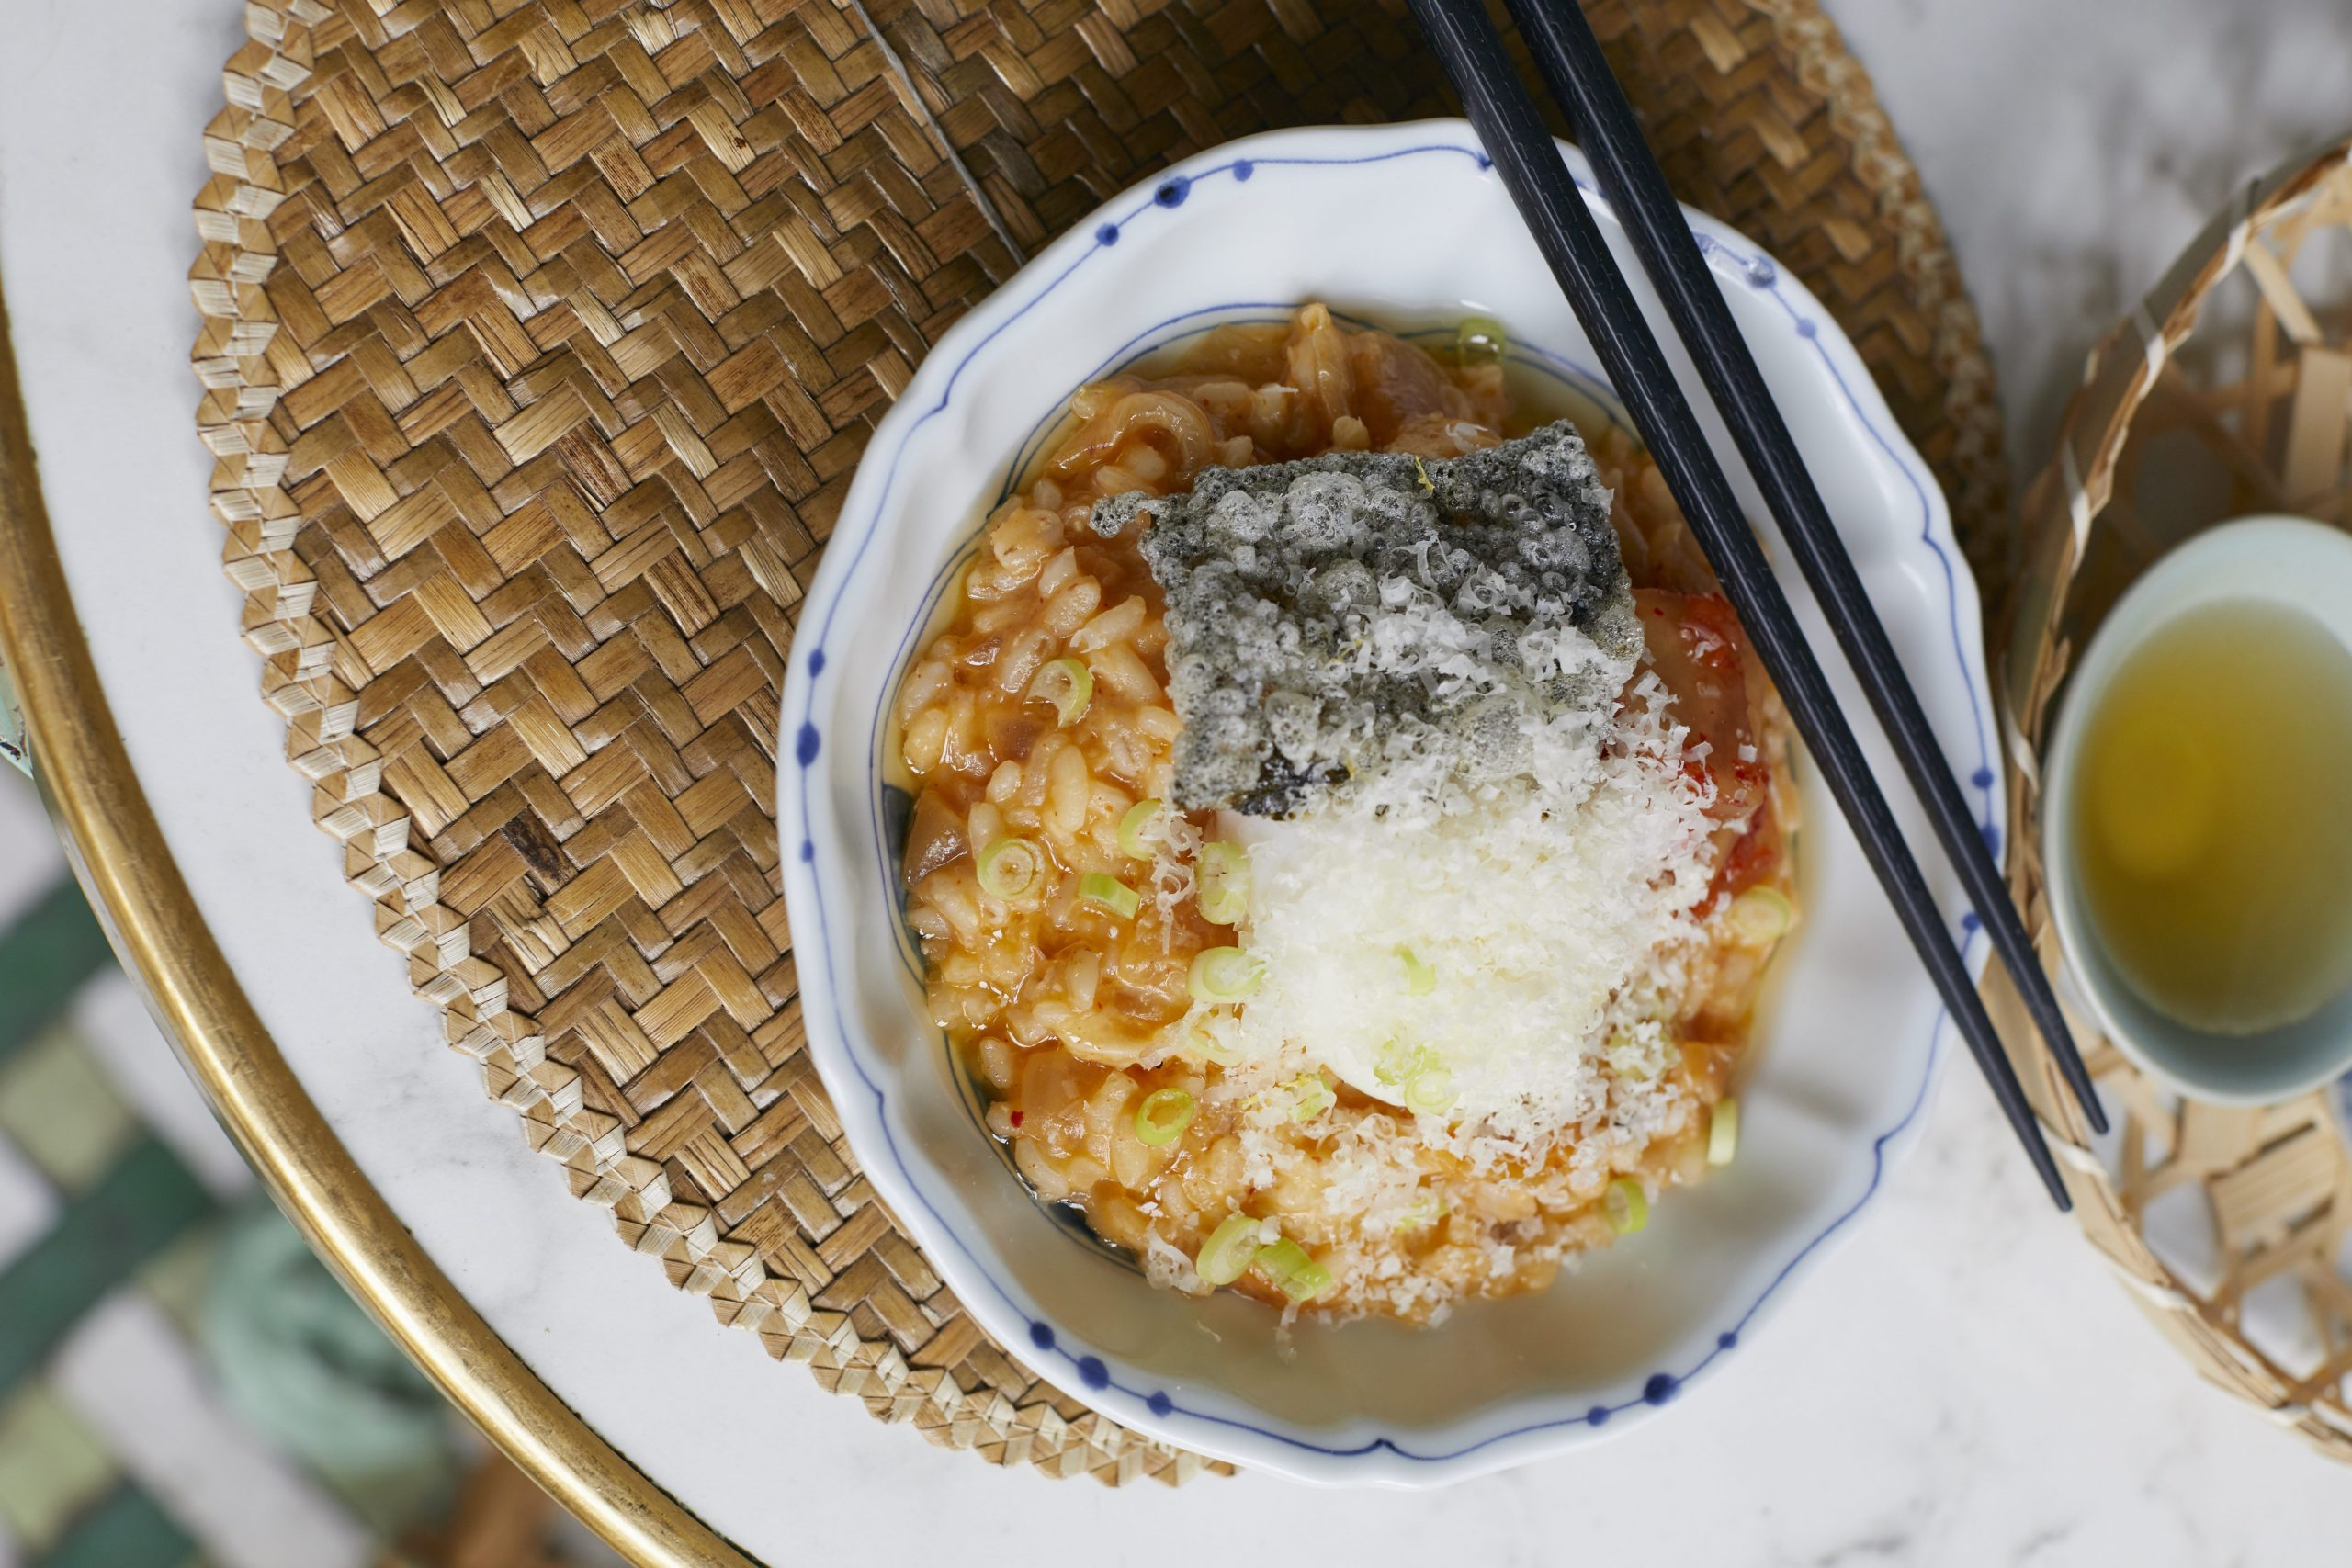 A bowl of risotto with kimchi, poached egg and crispy deep fried seaweed.